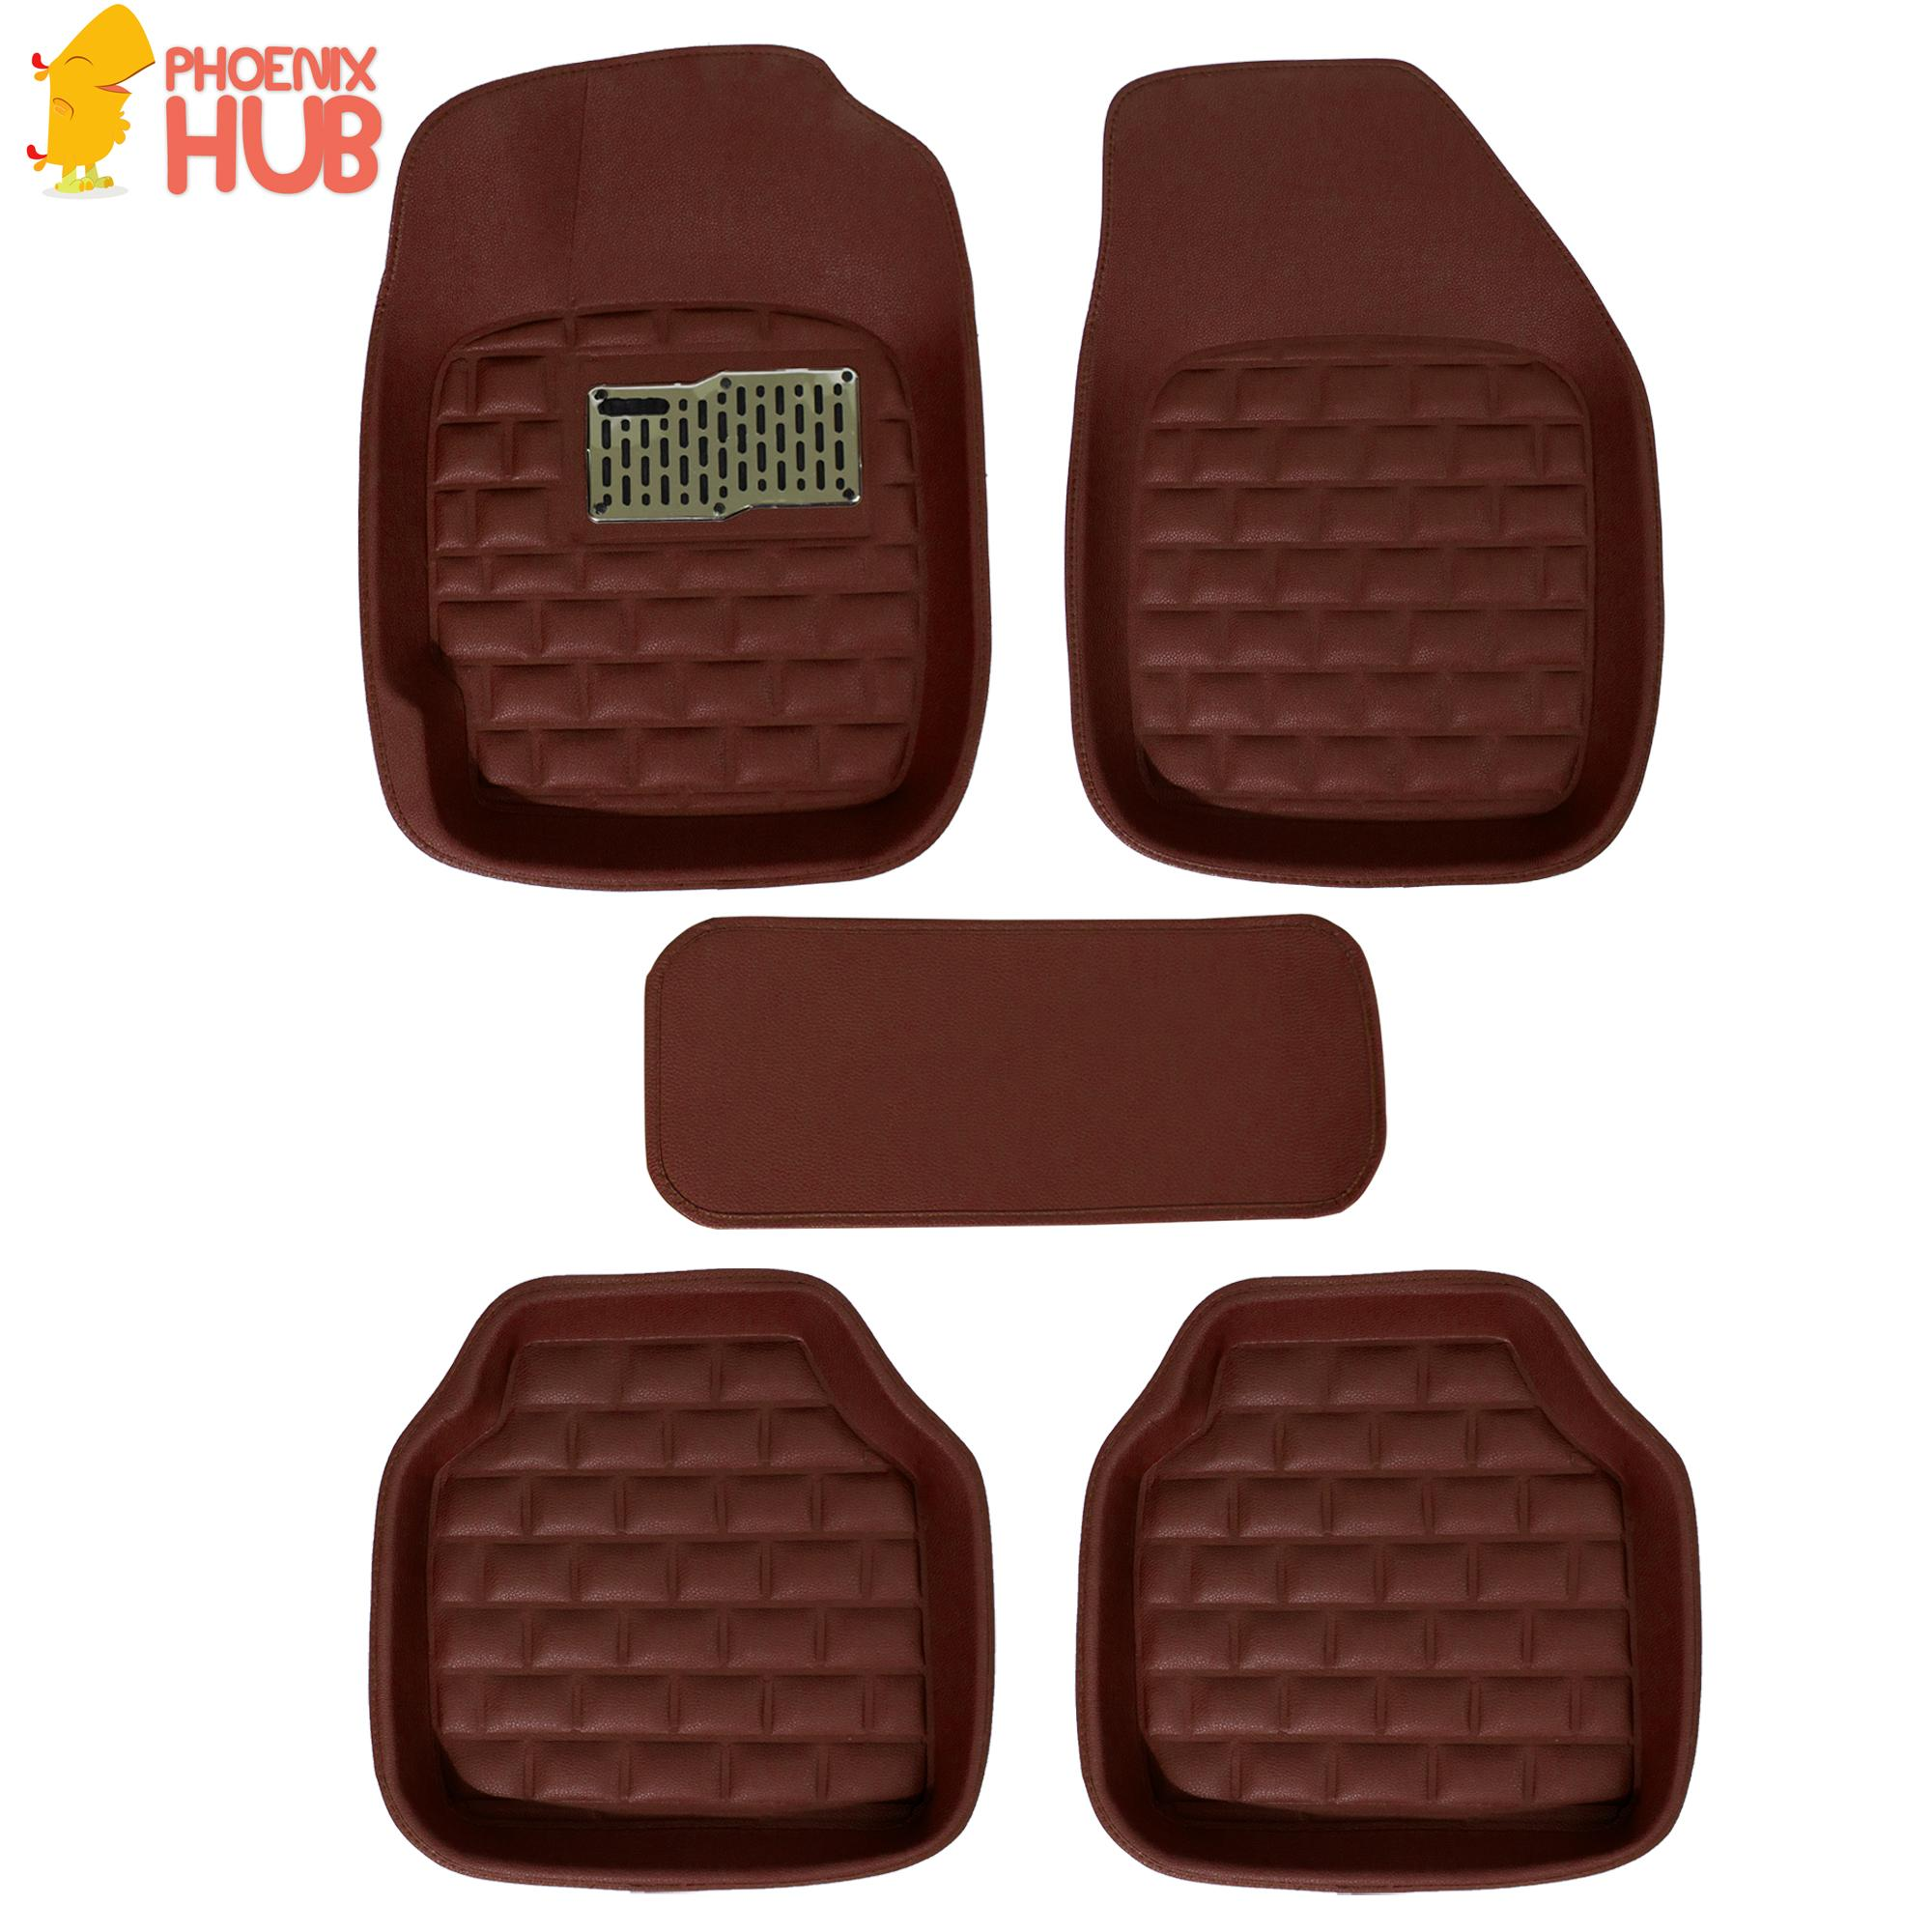 automotive floor shop tray kia buy vezel boot lexus automative lazada car truck liner liners mat honda mats petrol cargo